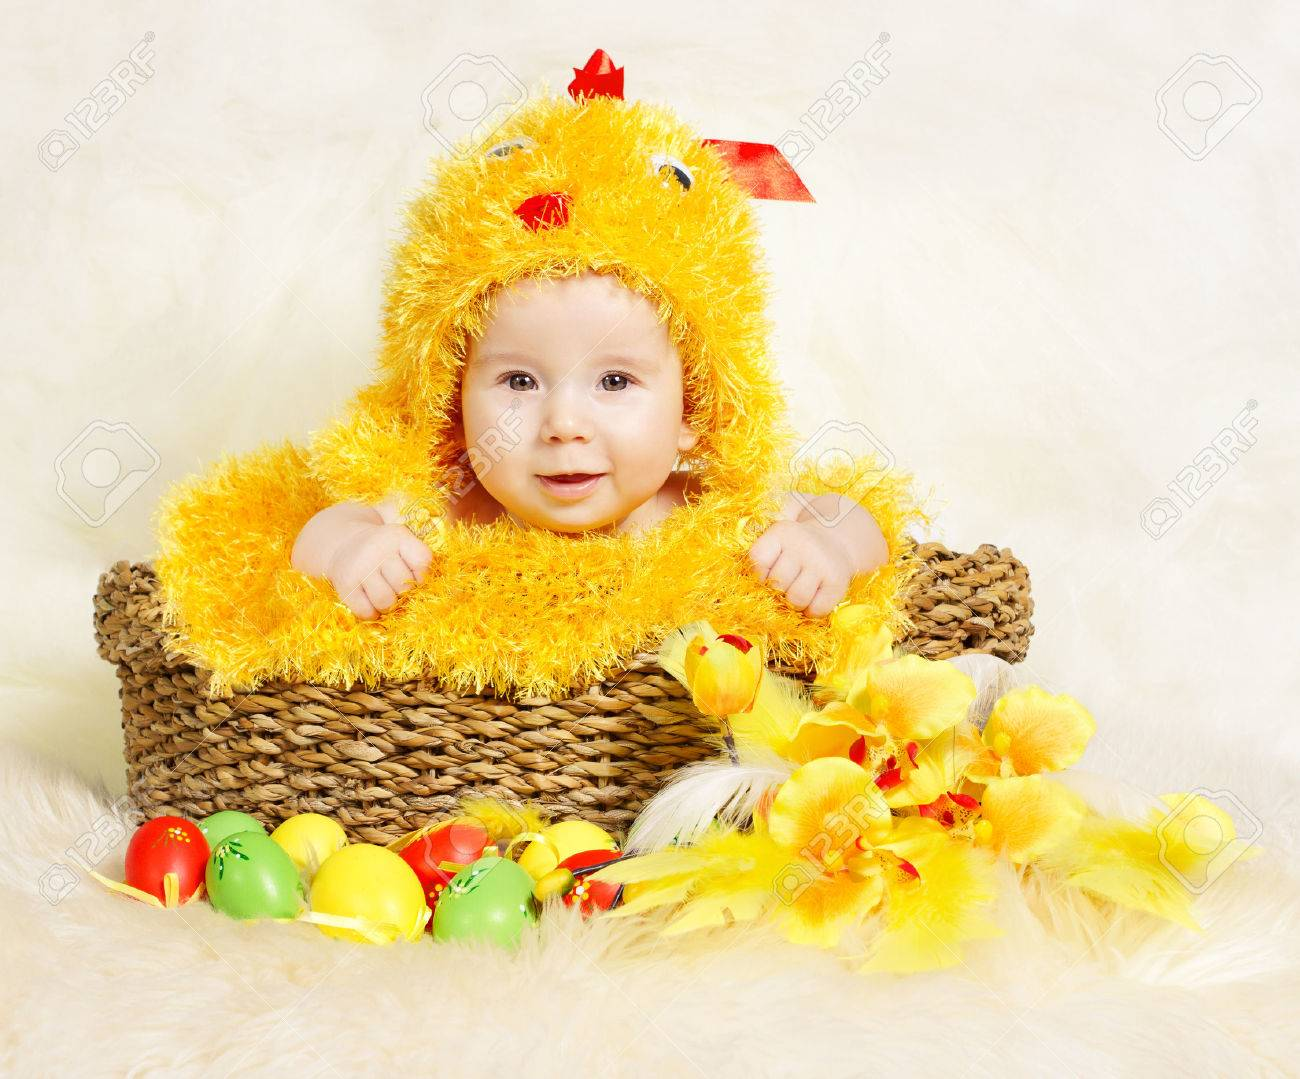 Baby in Easter basket with eggs in chicken costume. Easter holiday concept nest with  sc 1 st  123RF.com & Baby In Easter Basket With Eggs In Chicken Costume. Easter Holiday ...